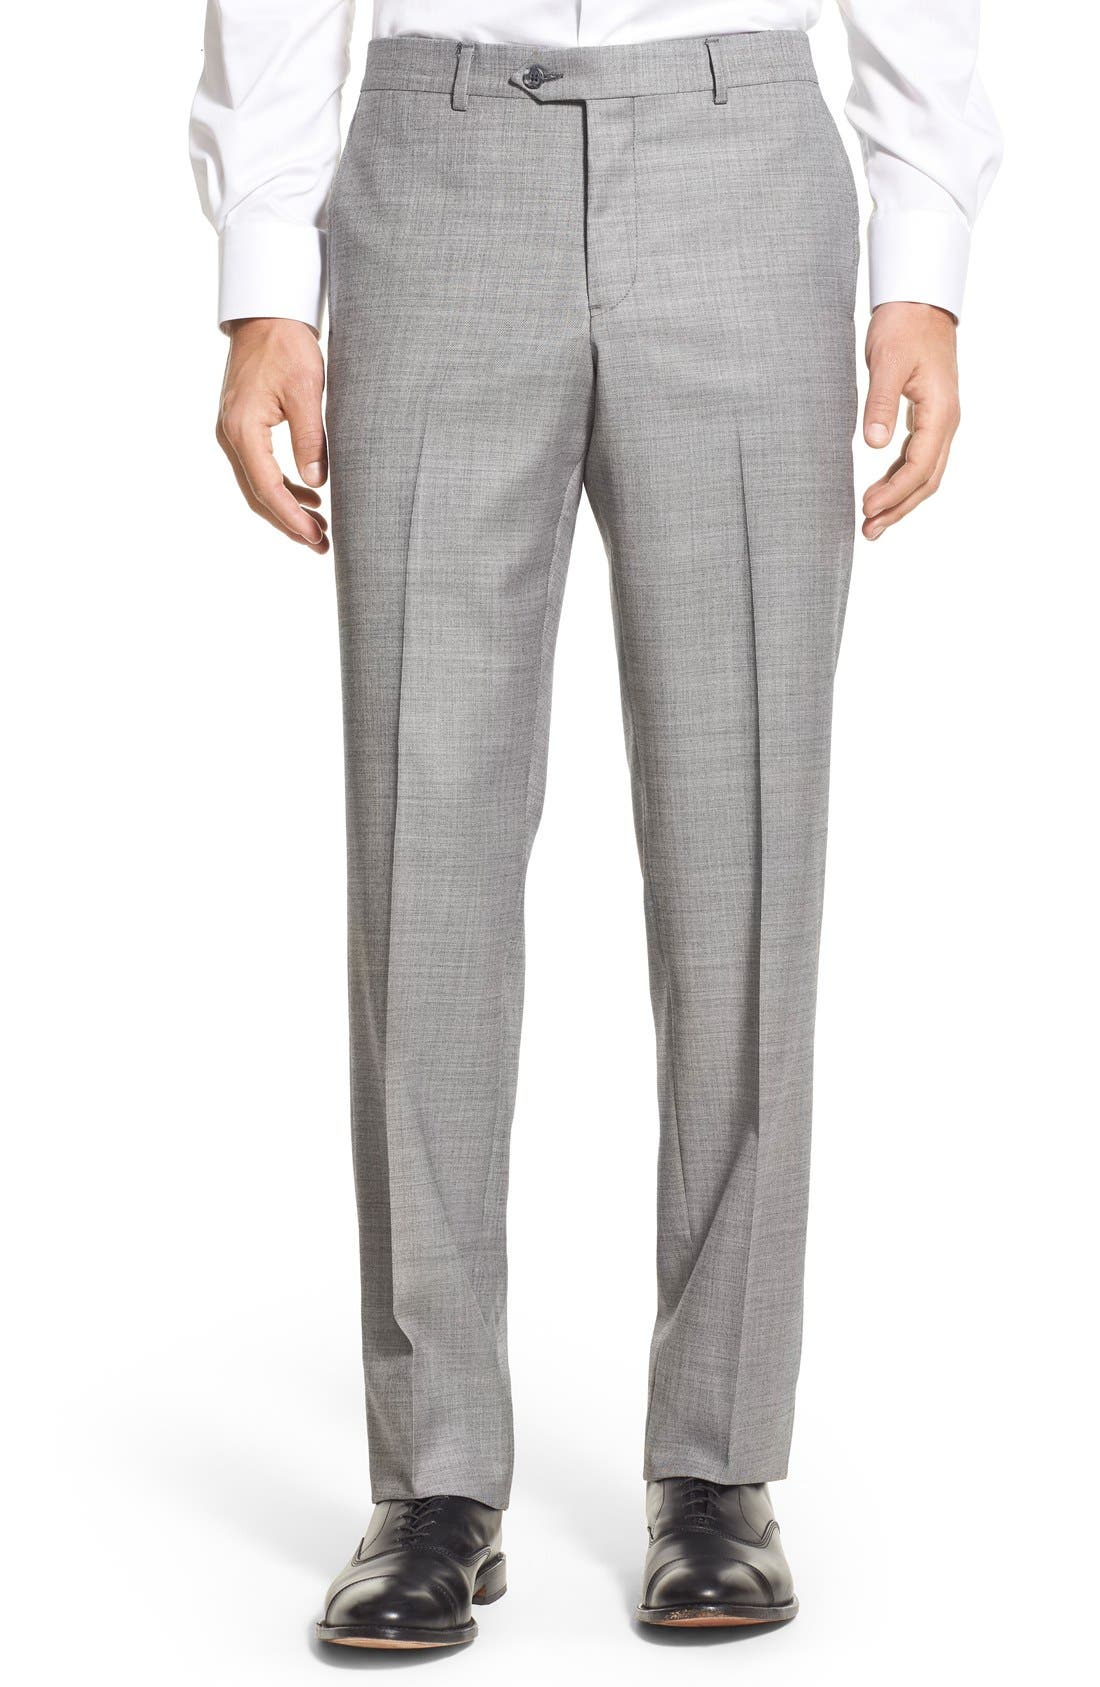 Nordstrom Men's Shop Flat Front Sharkskin Wool Trousers